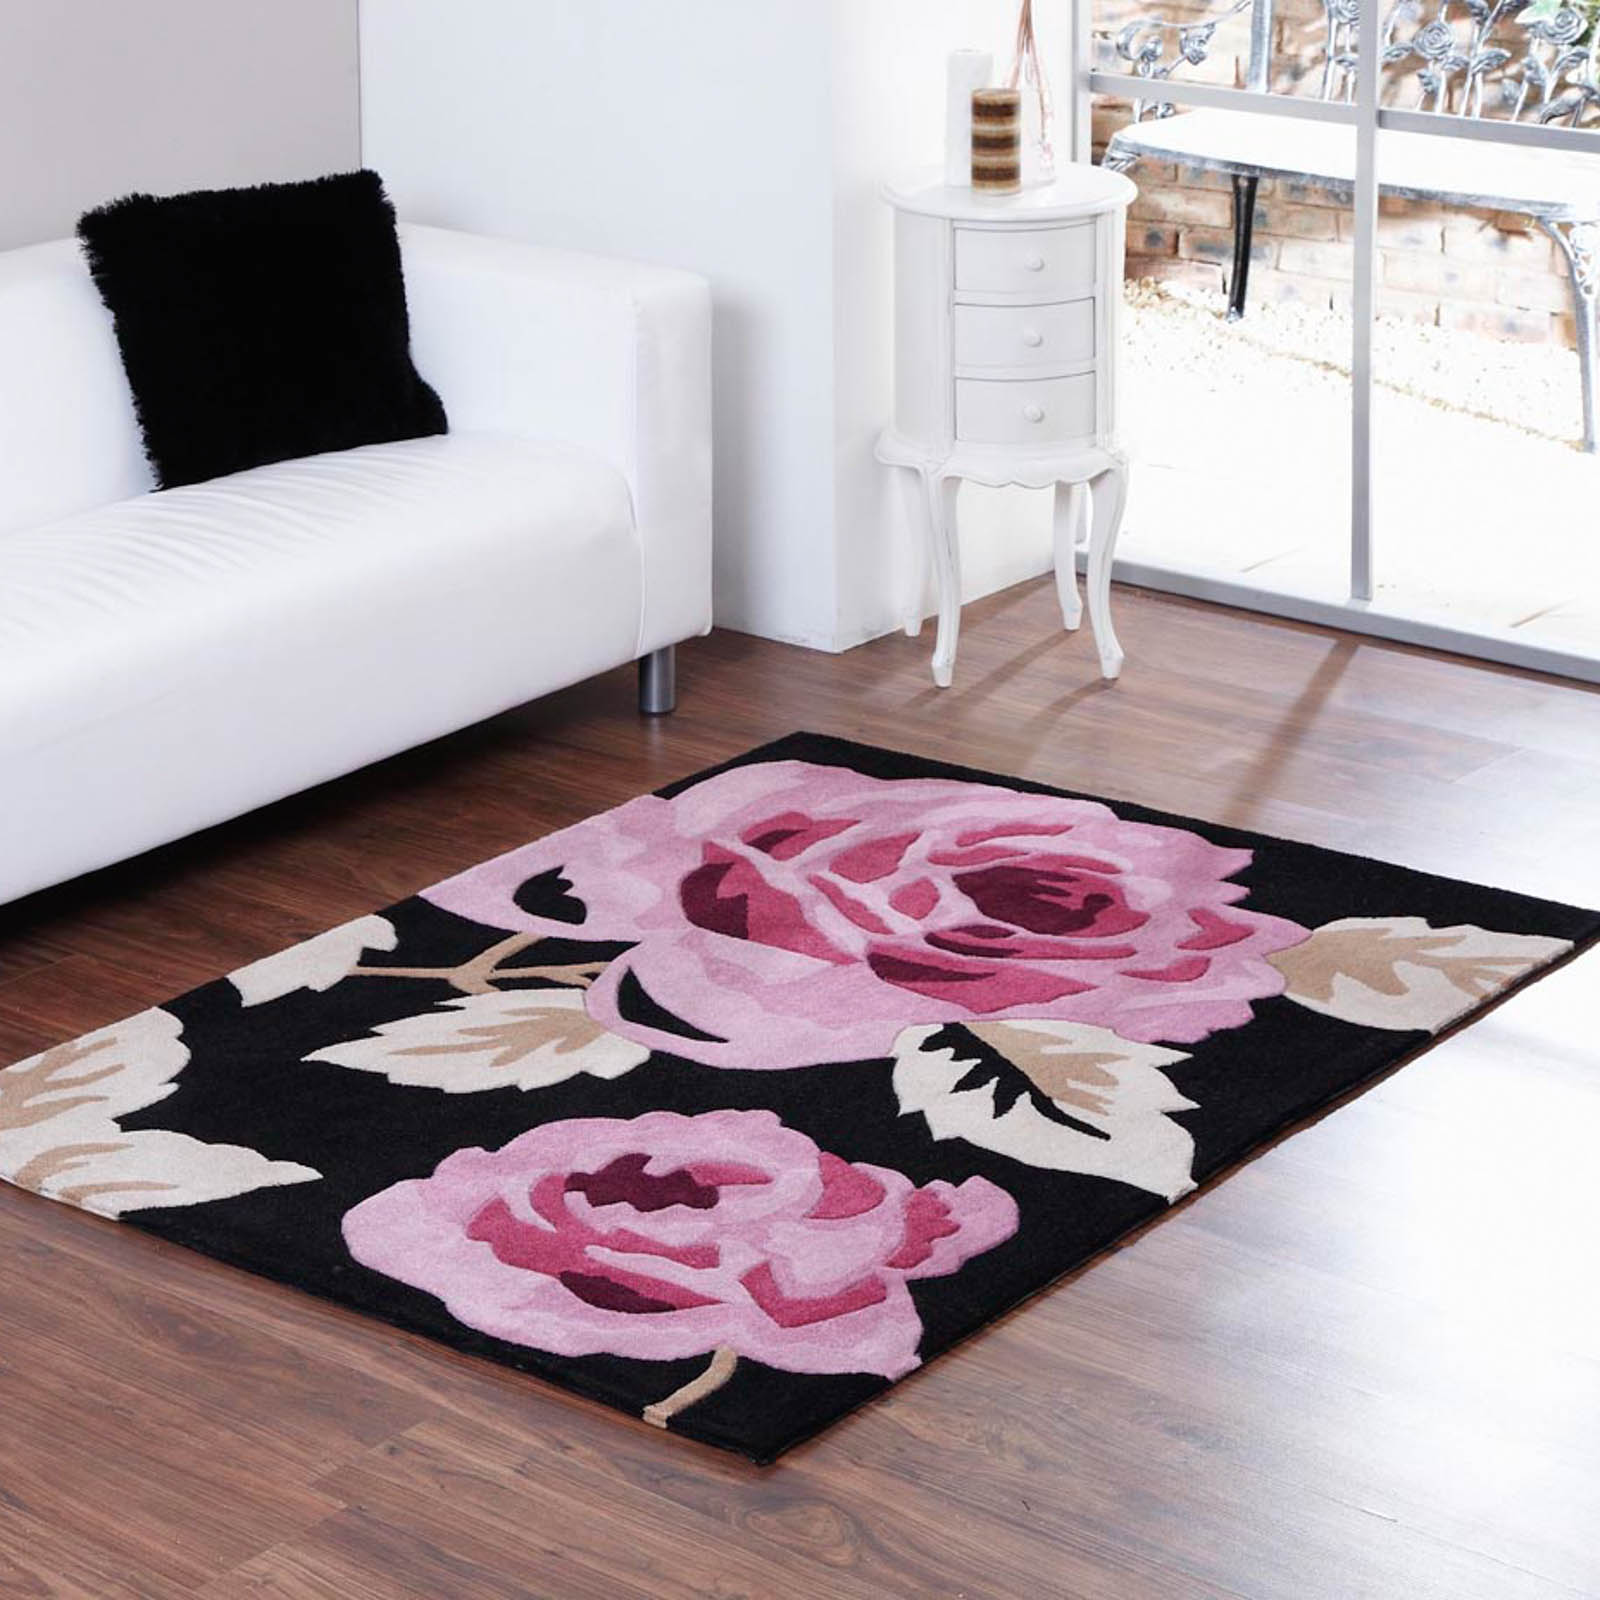 Aspire Zaire Rugs in Black Pink